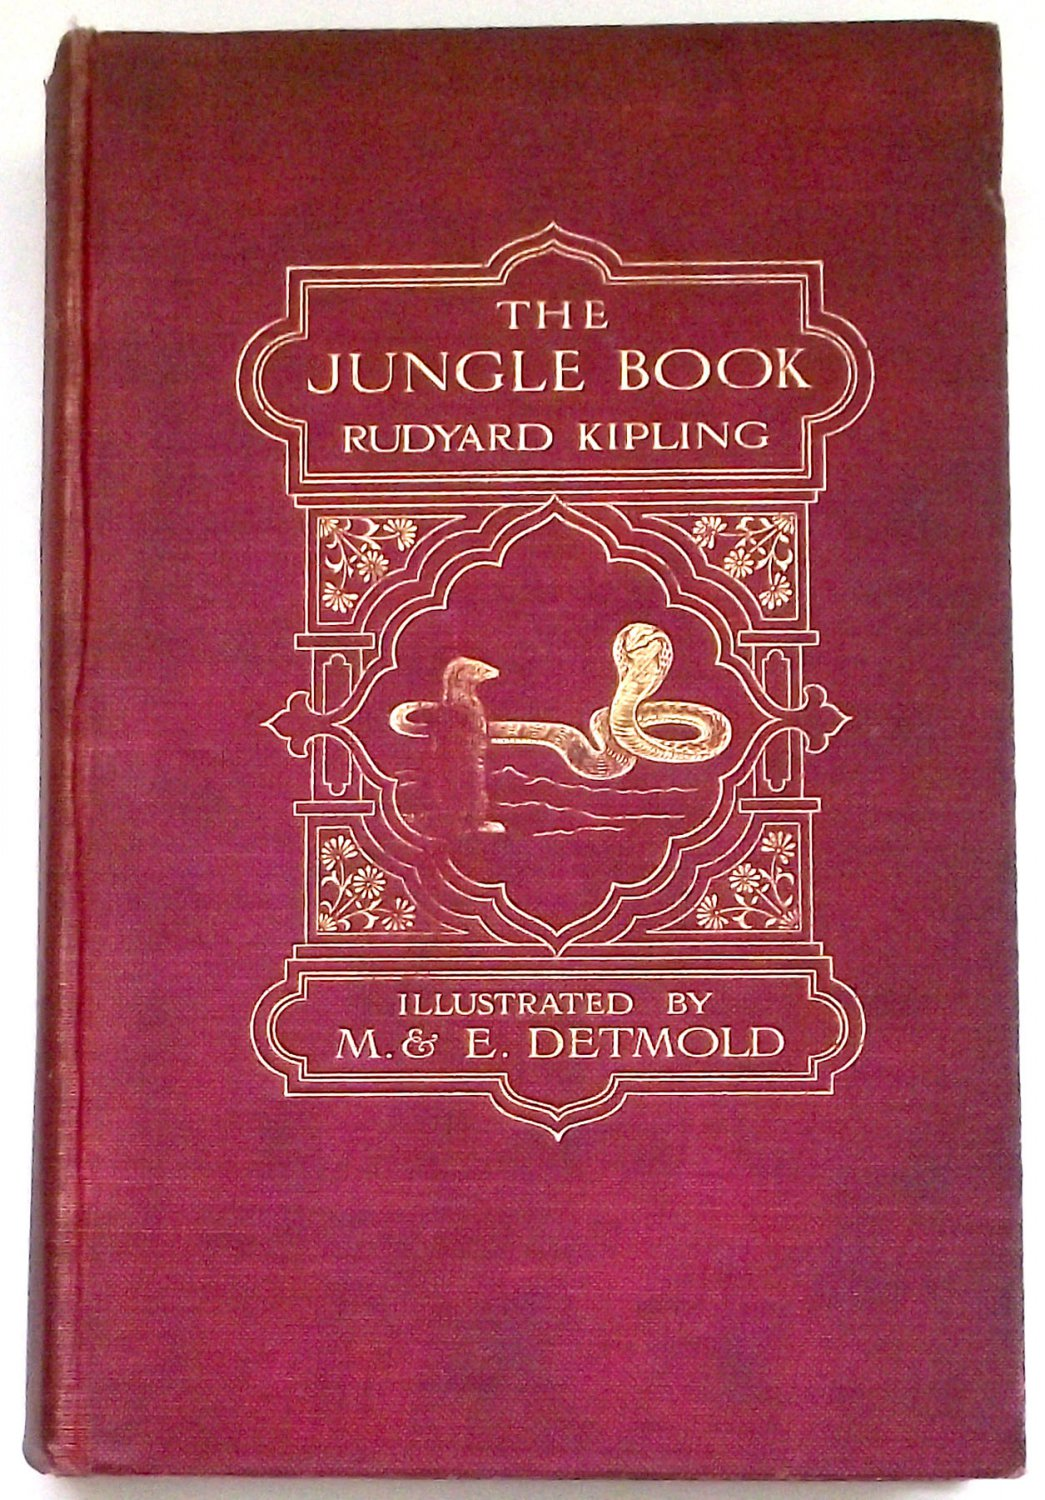 Rudyard Kipling The Jungle Book Illustrated by Maurice and Edward Detmold 1912